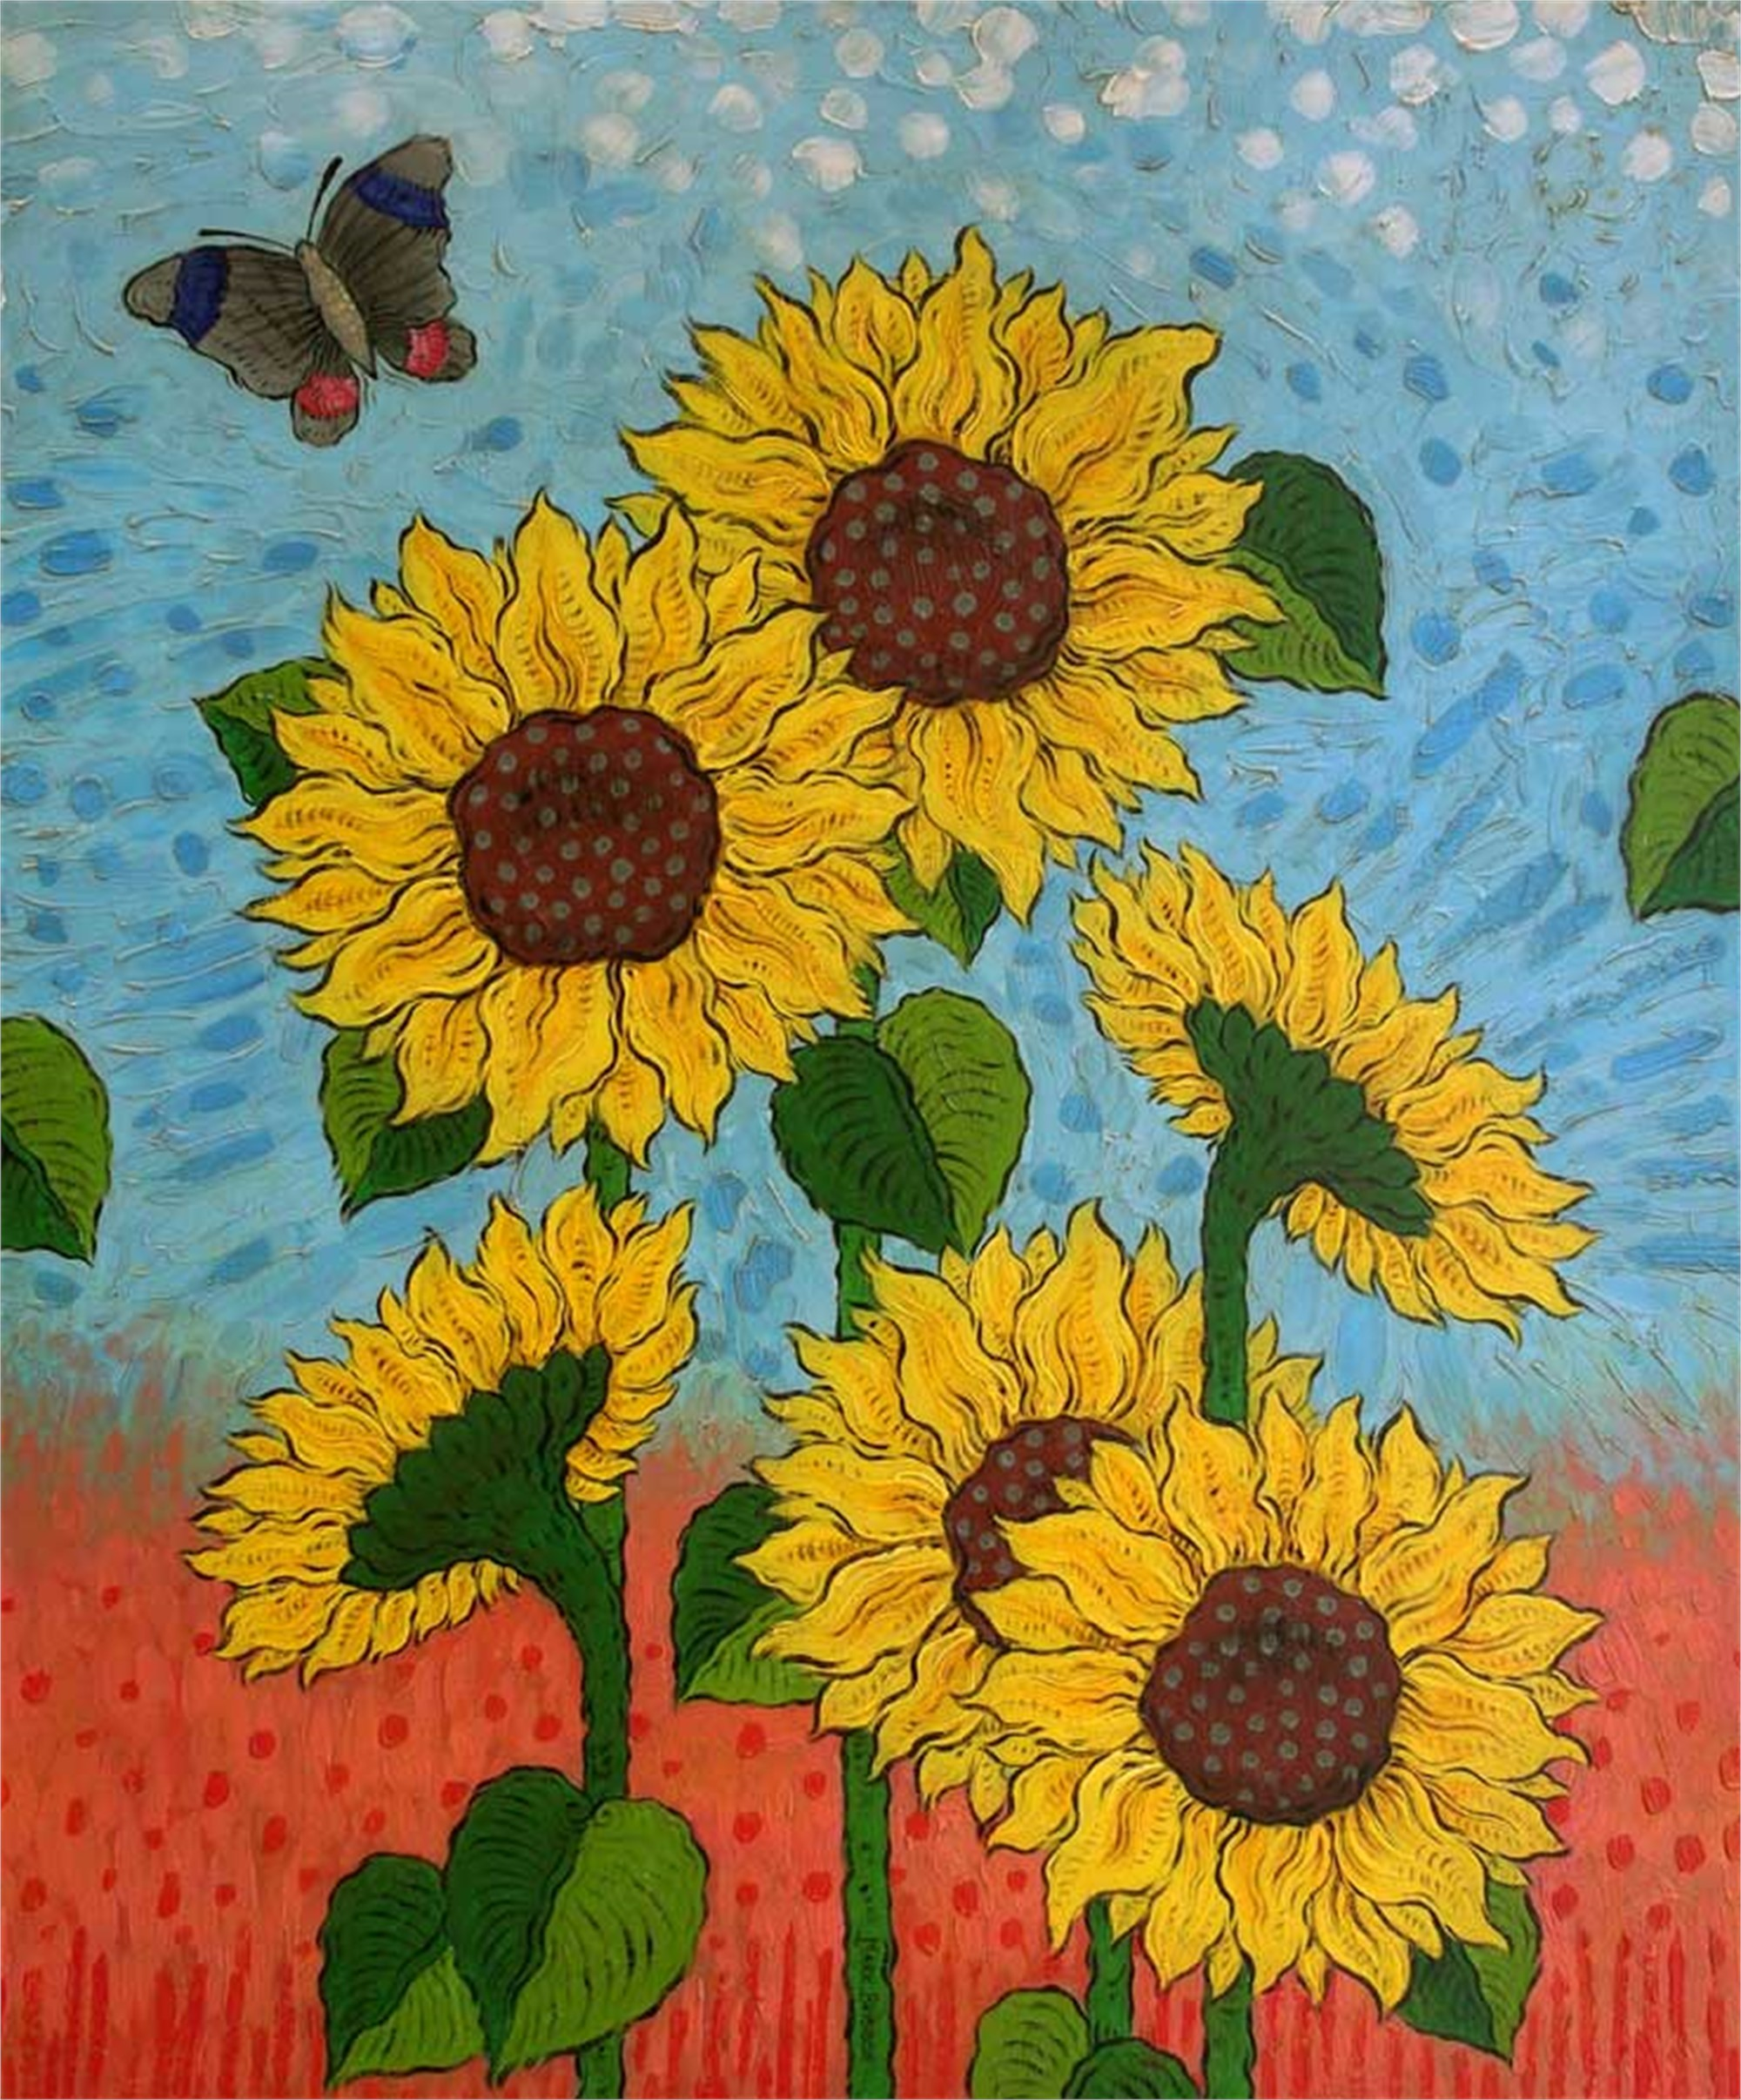 Sunflowers With Butterfly by Mark Briscoe